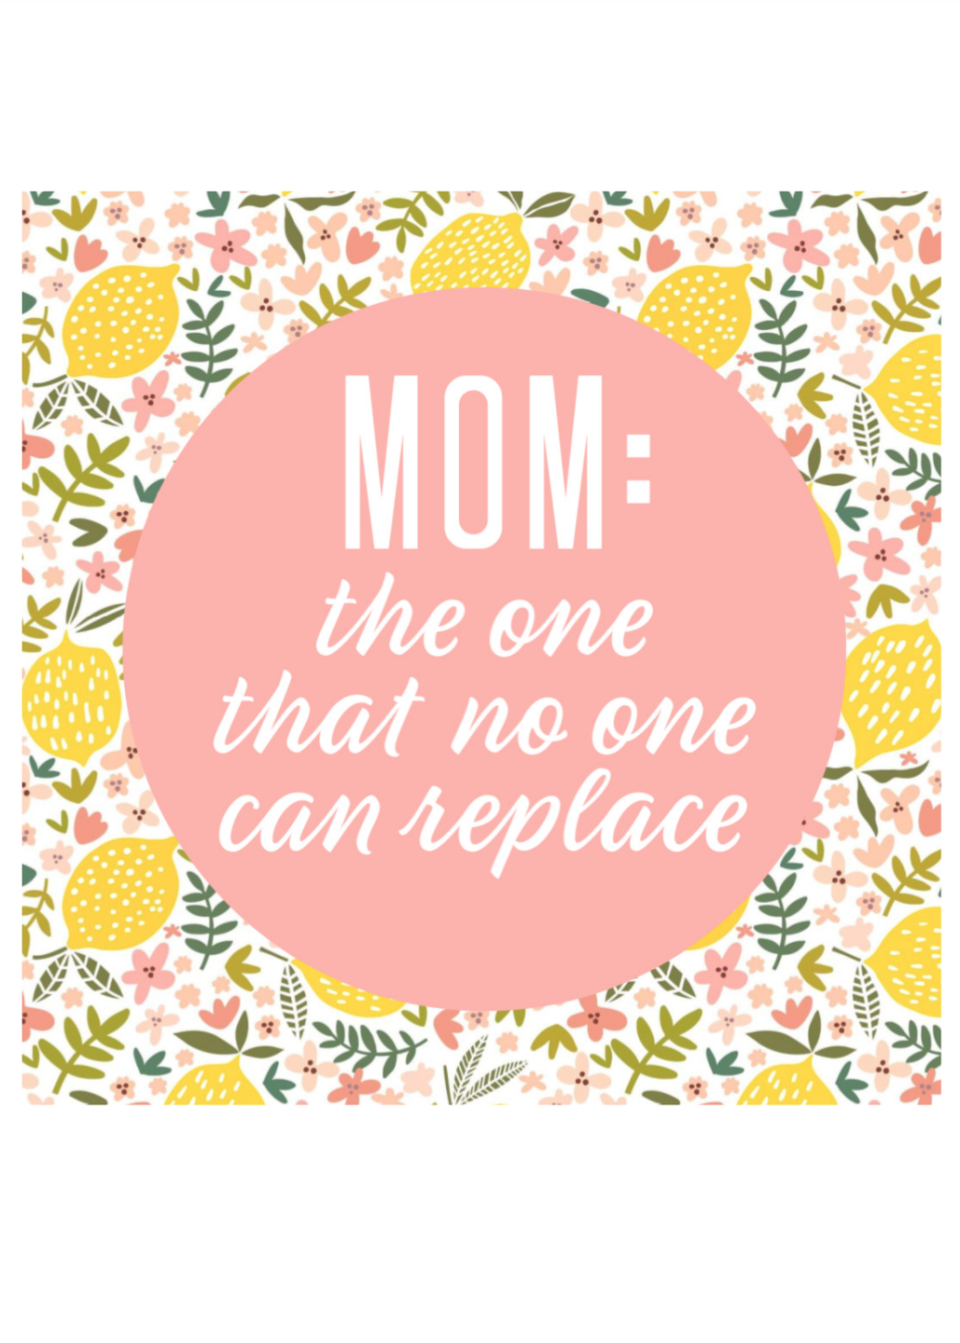 "<p>Not only is this saying totally accurate, but it's so cute with the lemon pattern. She may just want to display it all year long.<em><strong><br></strong></em></p><p><em><strong>Get the printable at <a href=""https://www.sixcleversisters.com/free-printable-square-mothers-day-cards/"" rel=""nofollow noopener"" target=""_blank"" data-ylk=""slk:Six Clever Sisters"" class=""link rapid-noclick-resp"">Six Clever Sisters</a>.</strong></em></p>"